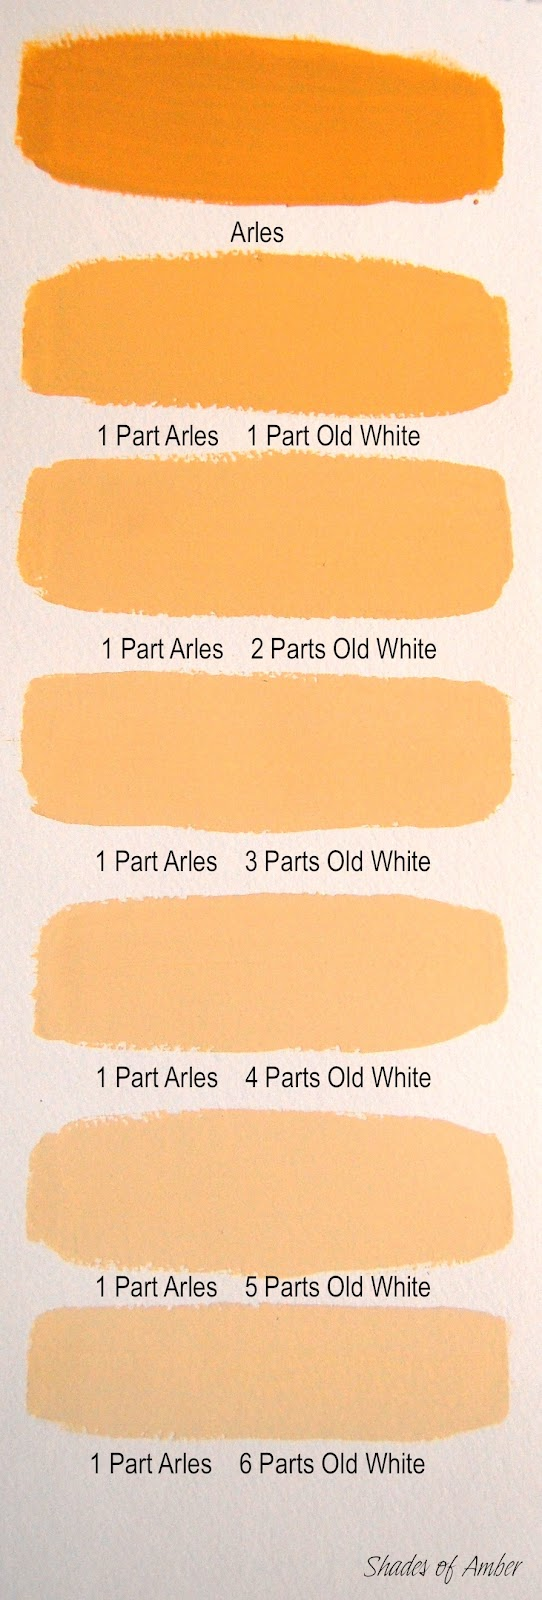 Chalk Paint Color Theory Arles on Annie Sloan Painted Furniture With Paint